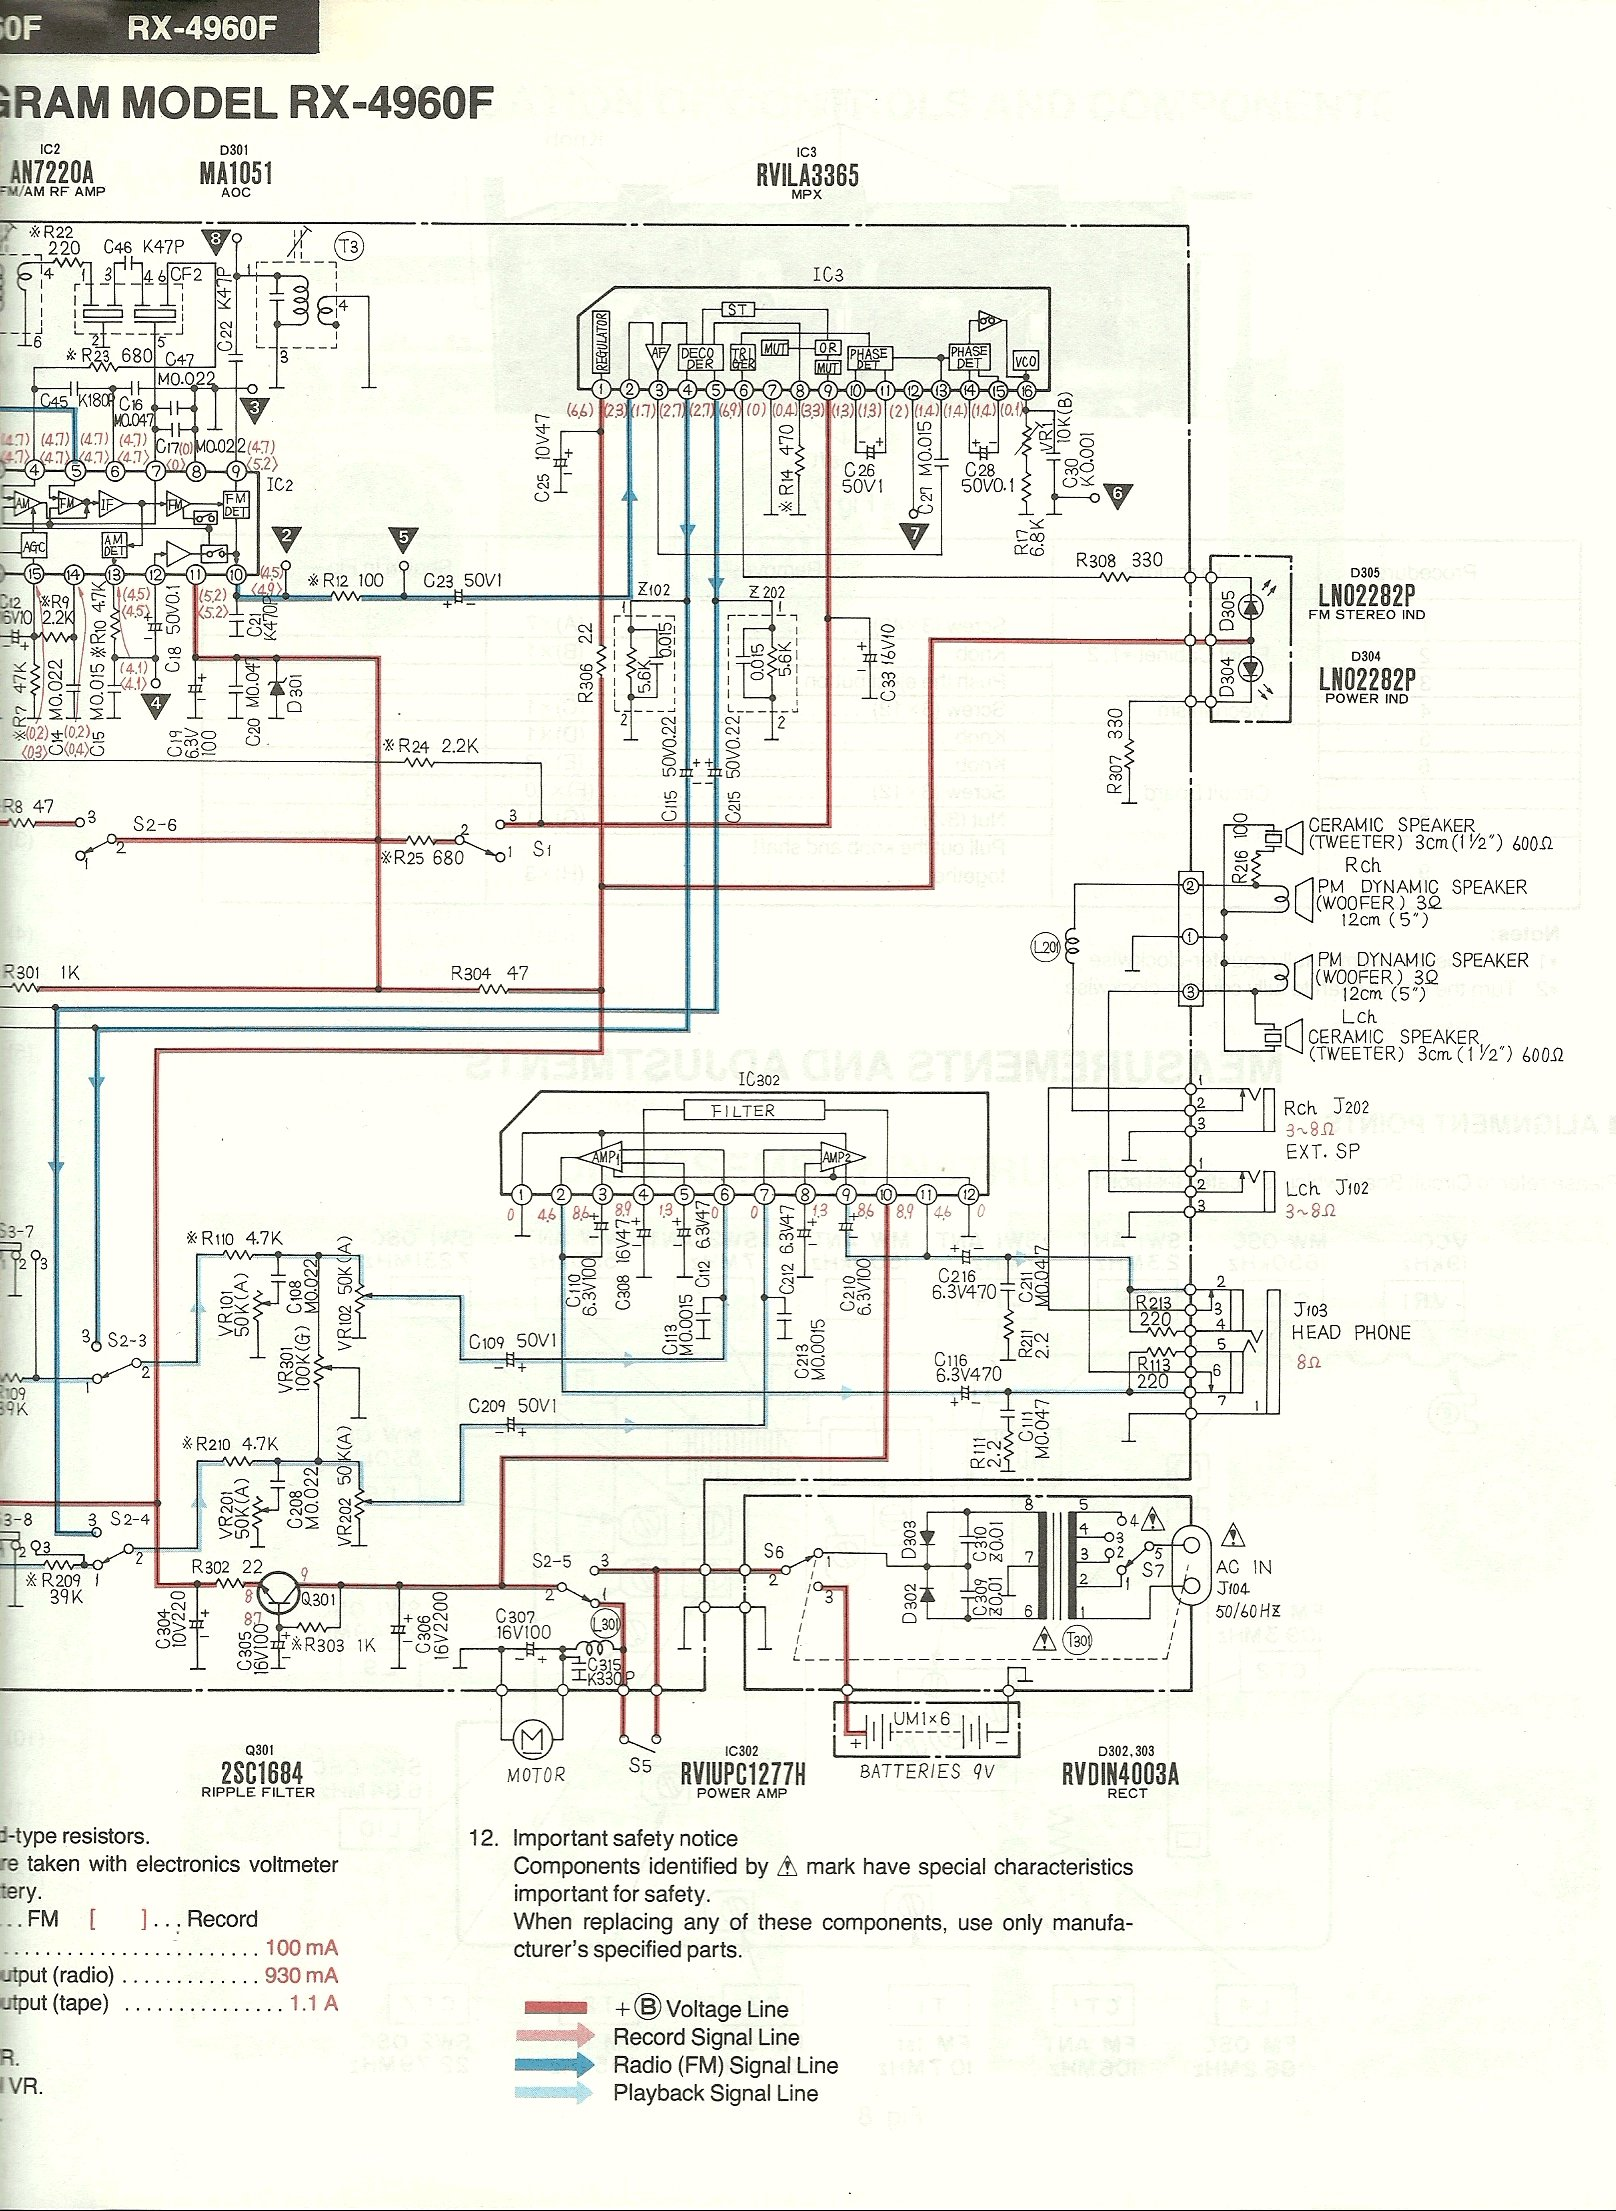 Diagram Wiring Diagrams Tumble Driers Macspares Wiring Diagram Full Version Hd Quality Wiring Diagram Christfortheamazon Coiffure A Domicile 67 Fr